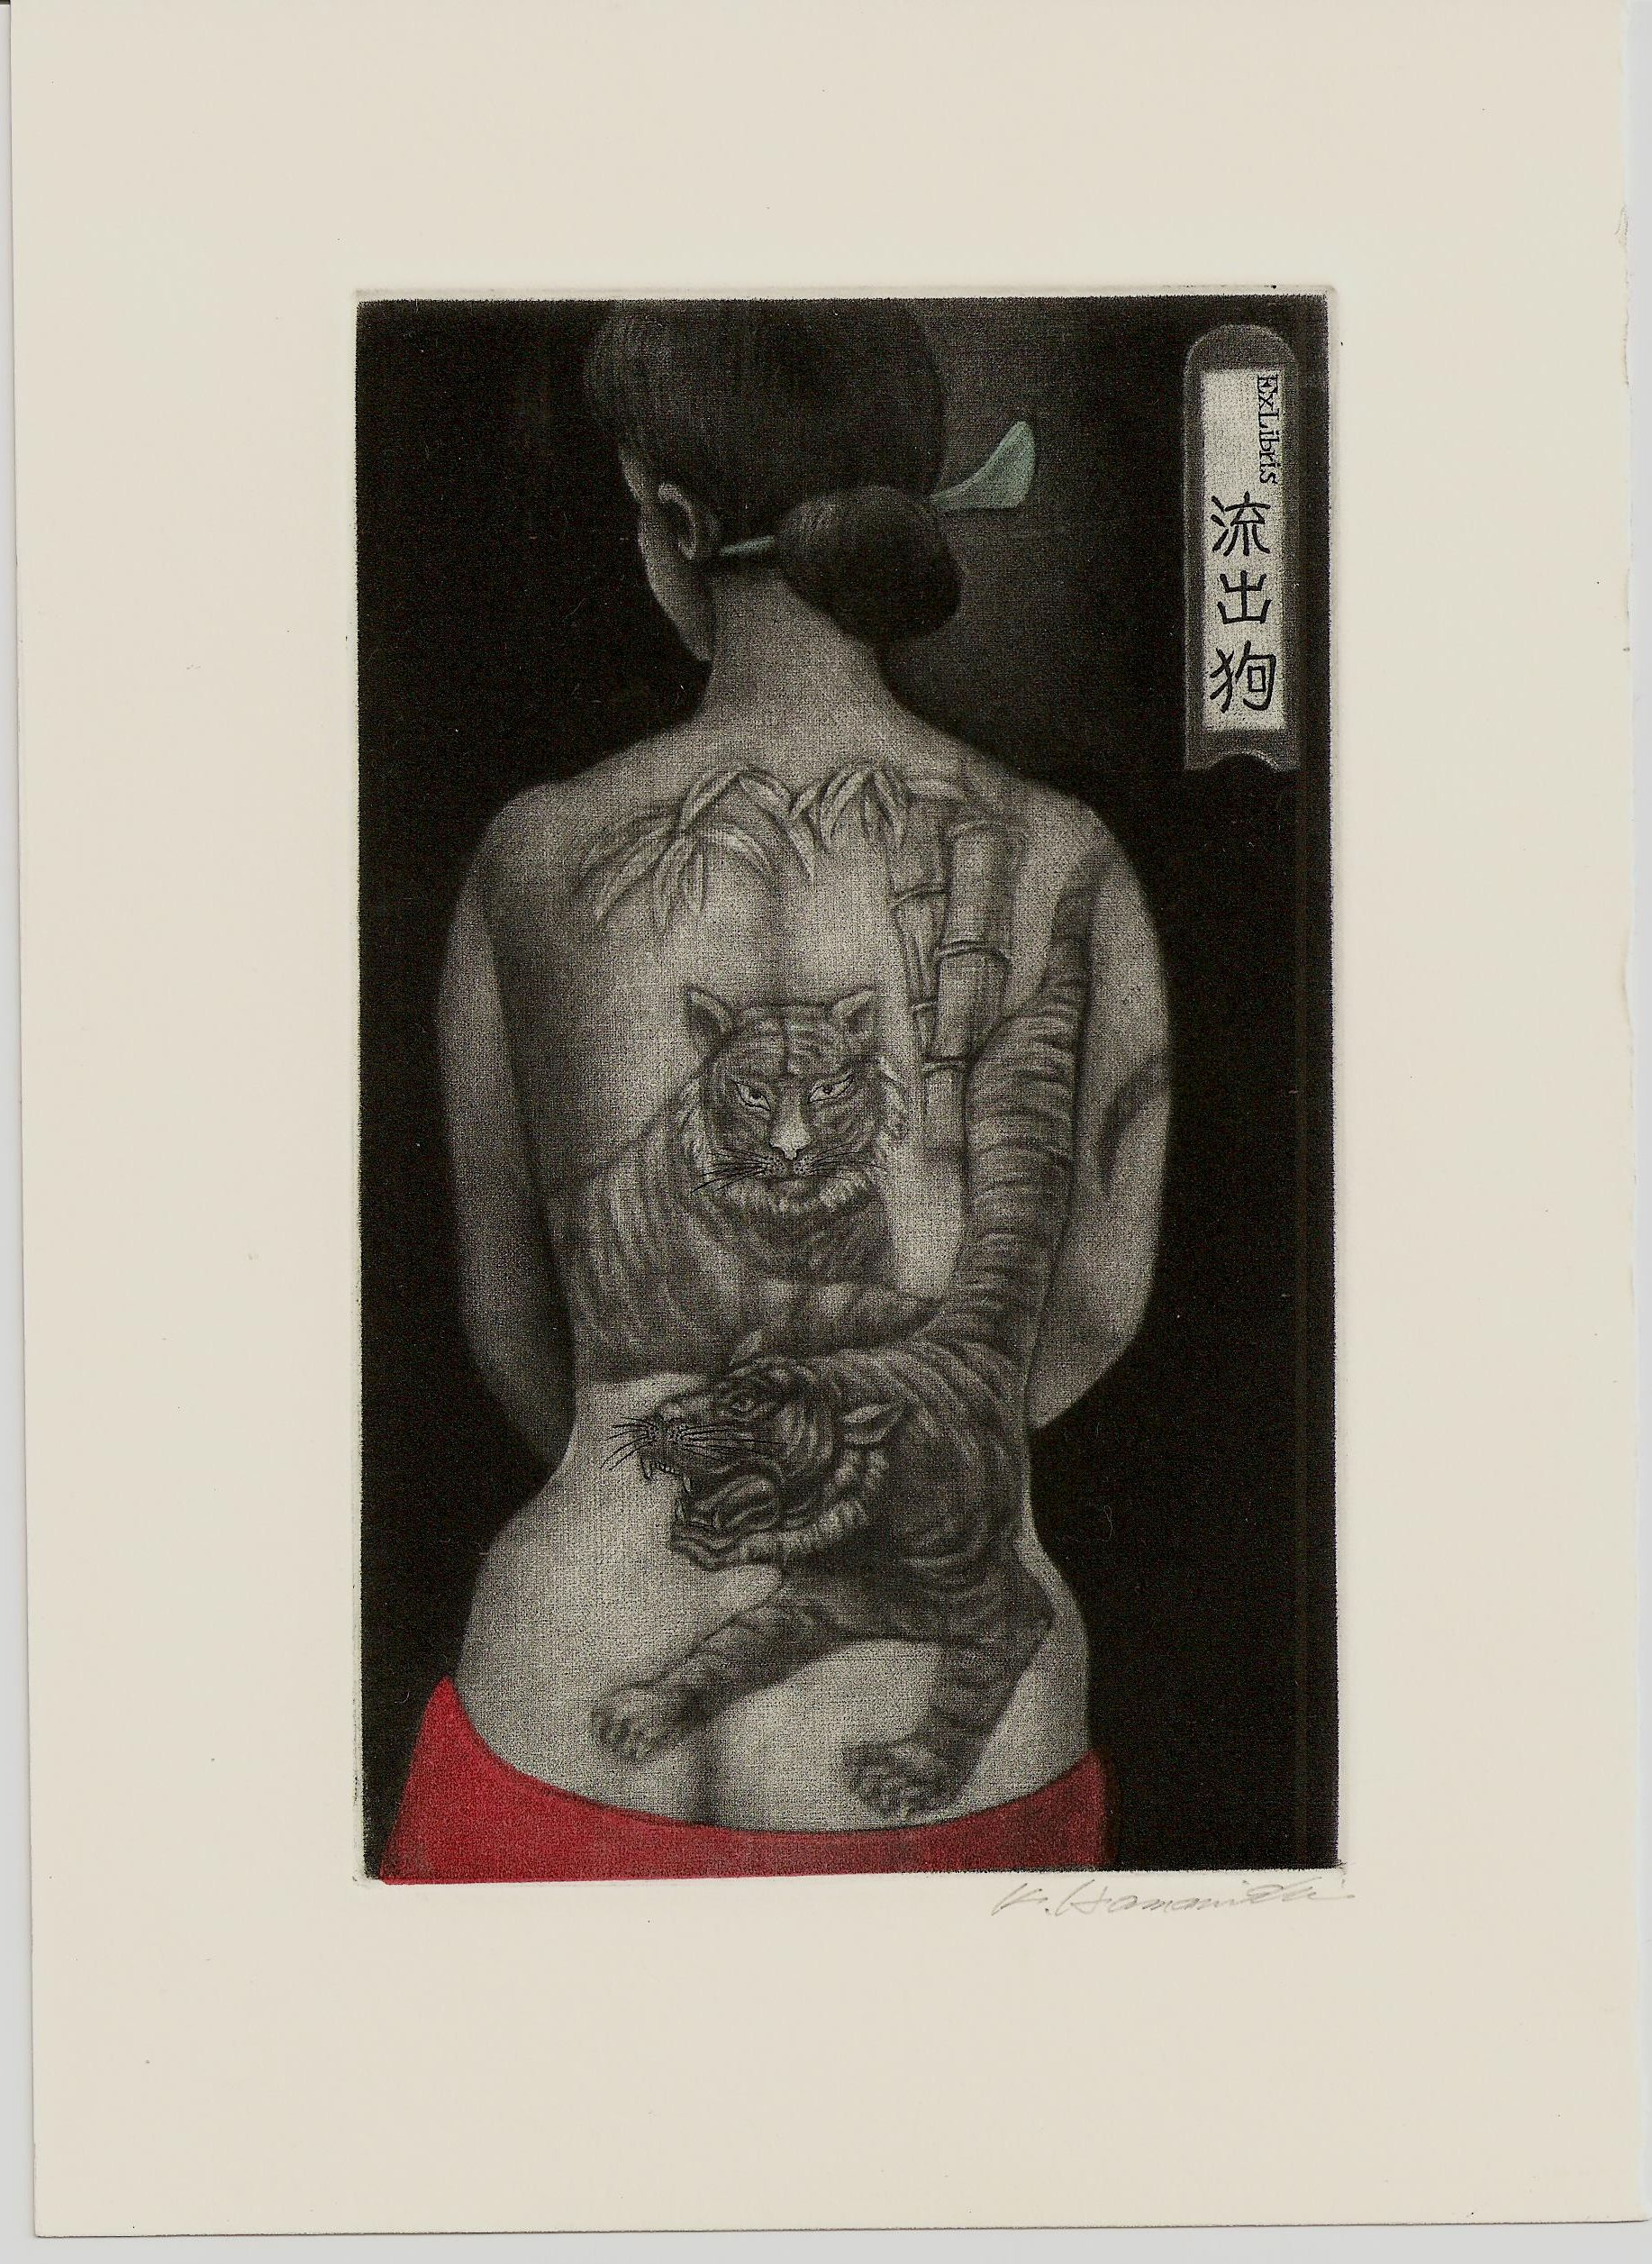 Hamanishi Katsunori - Tigers tatoo